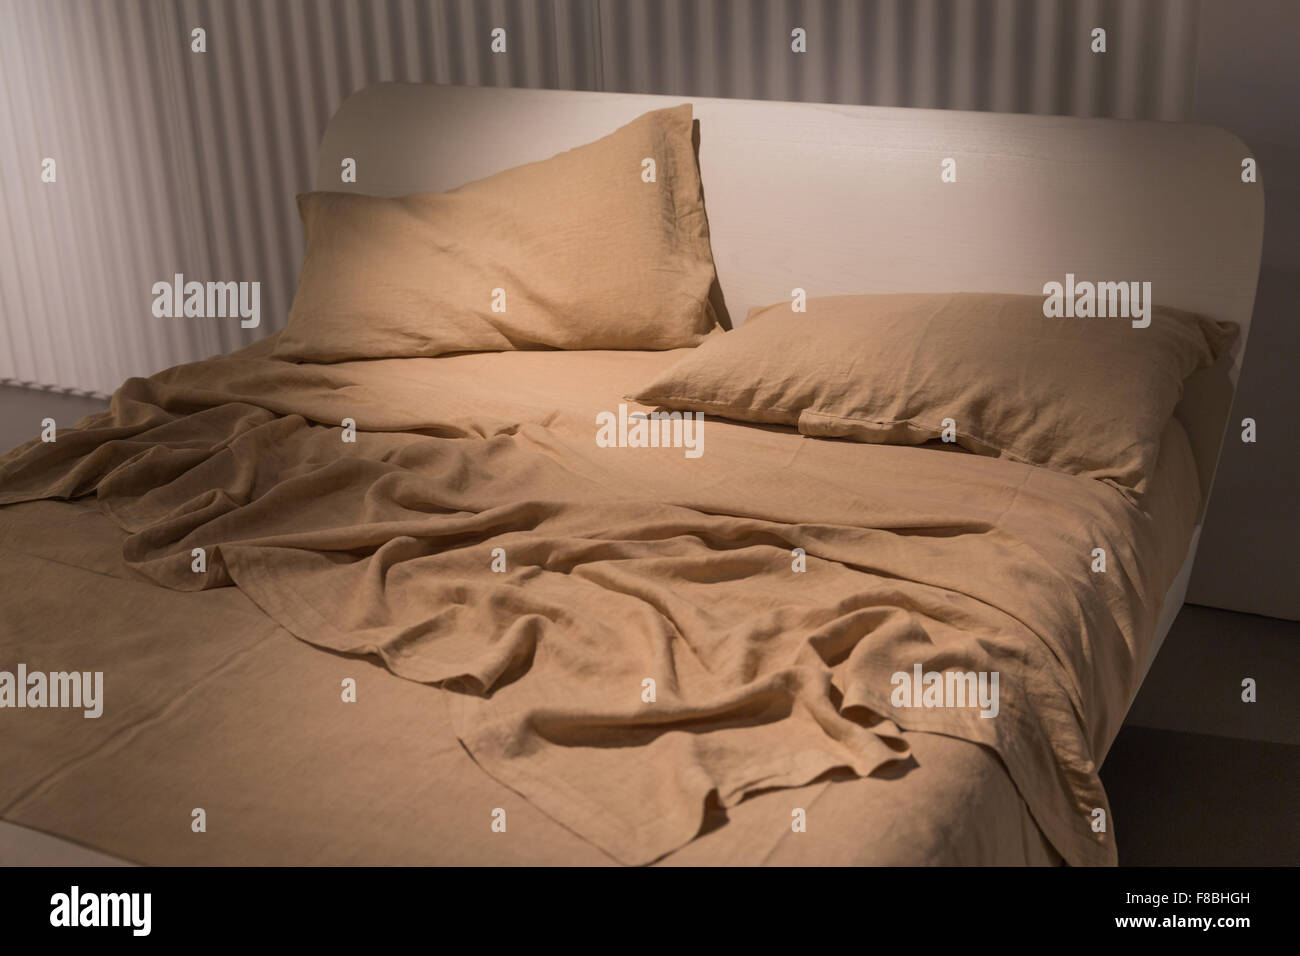 Luxury bed with crumpled  sheets and a warm blanket - Stock Image